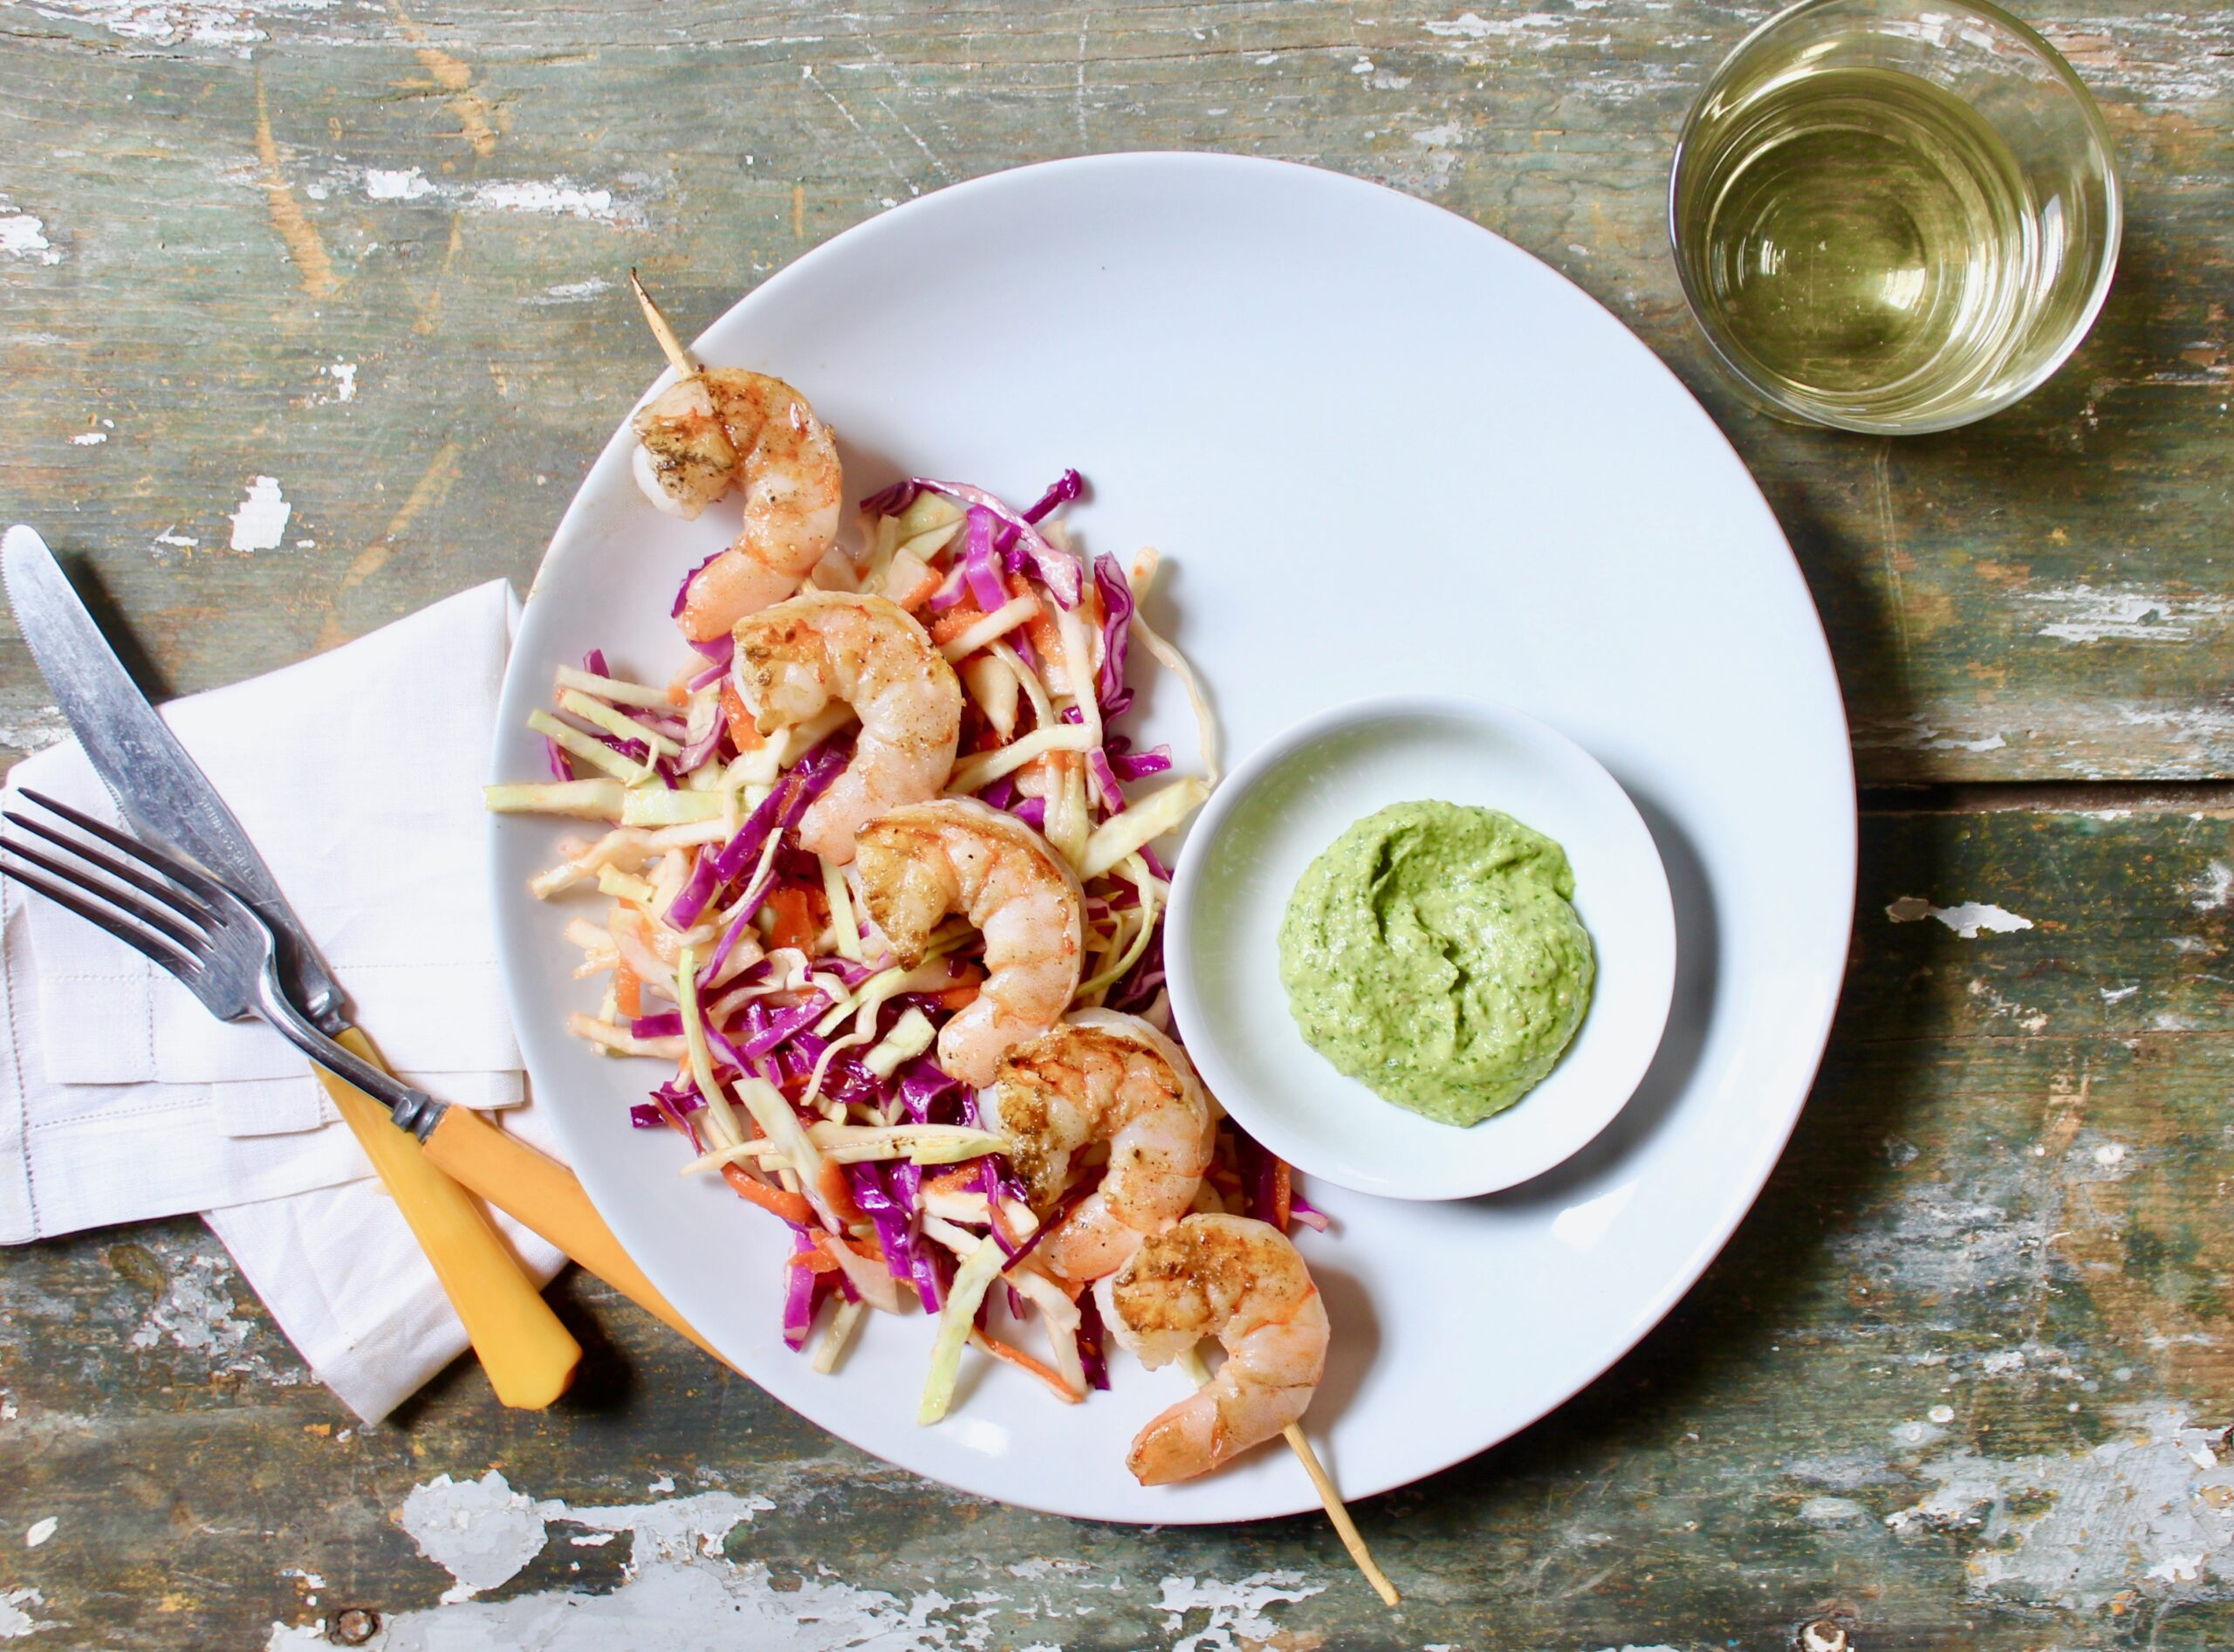 grilled shrimp with herbed pistachio sauce